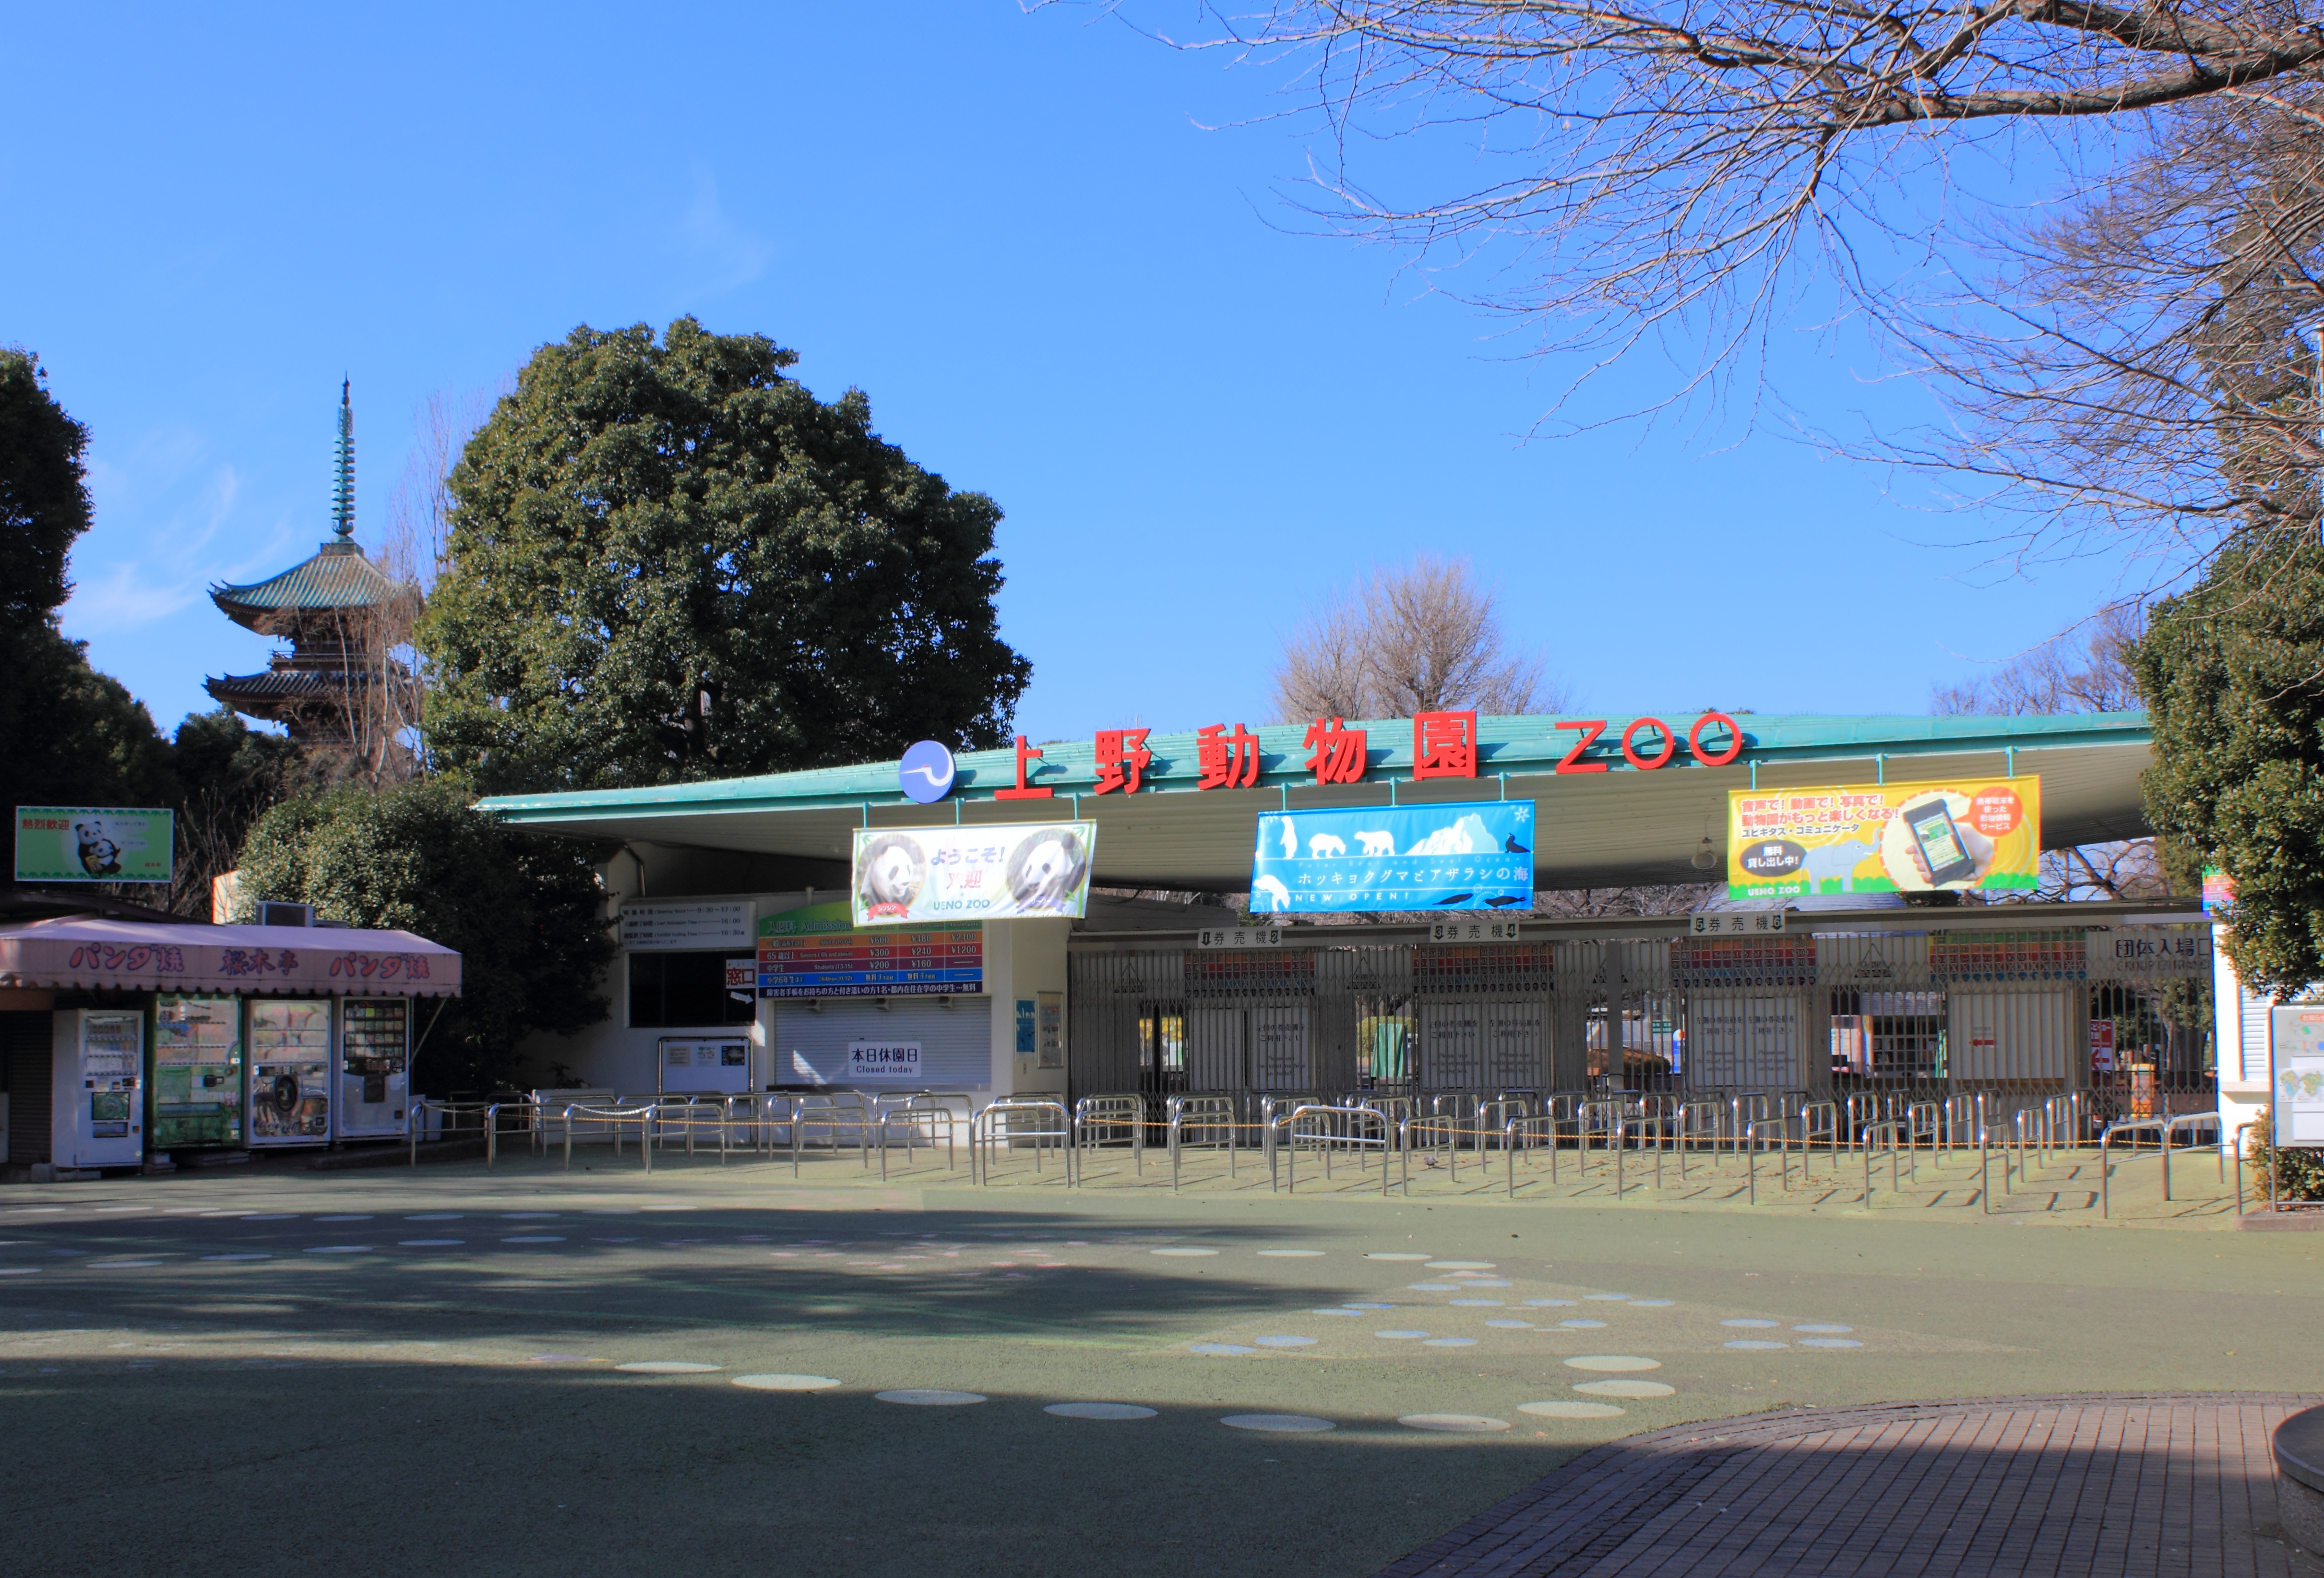 https://upload.wikimedia.org/wikipedia/commons/3/3a/Ueno_Zoo_2012.JPG